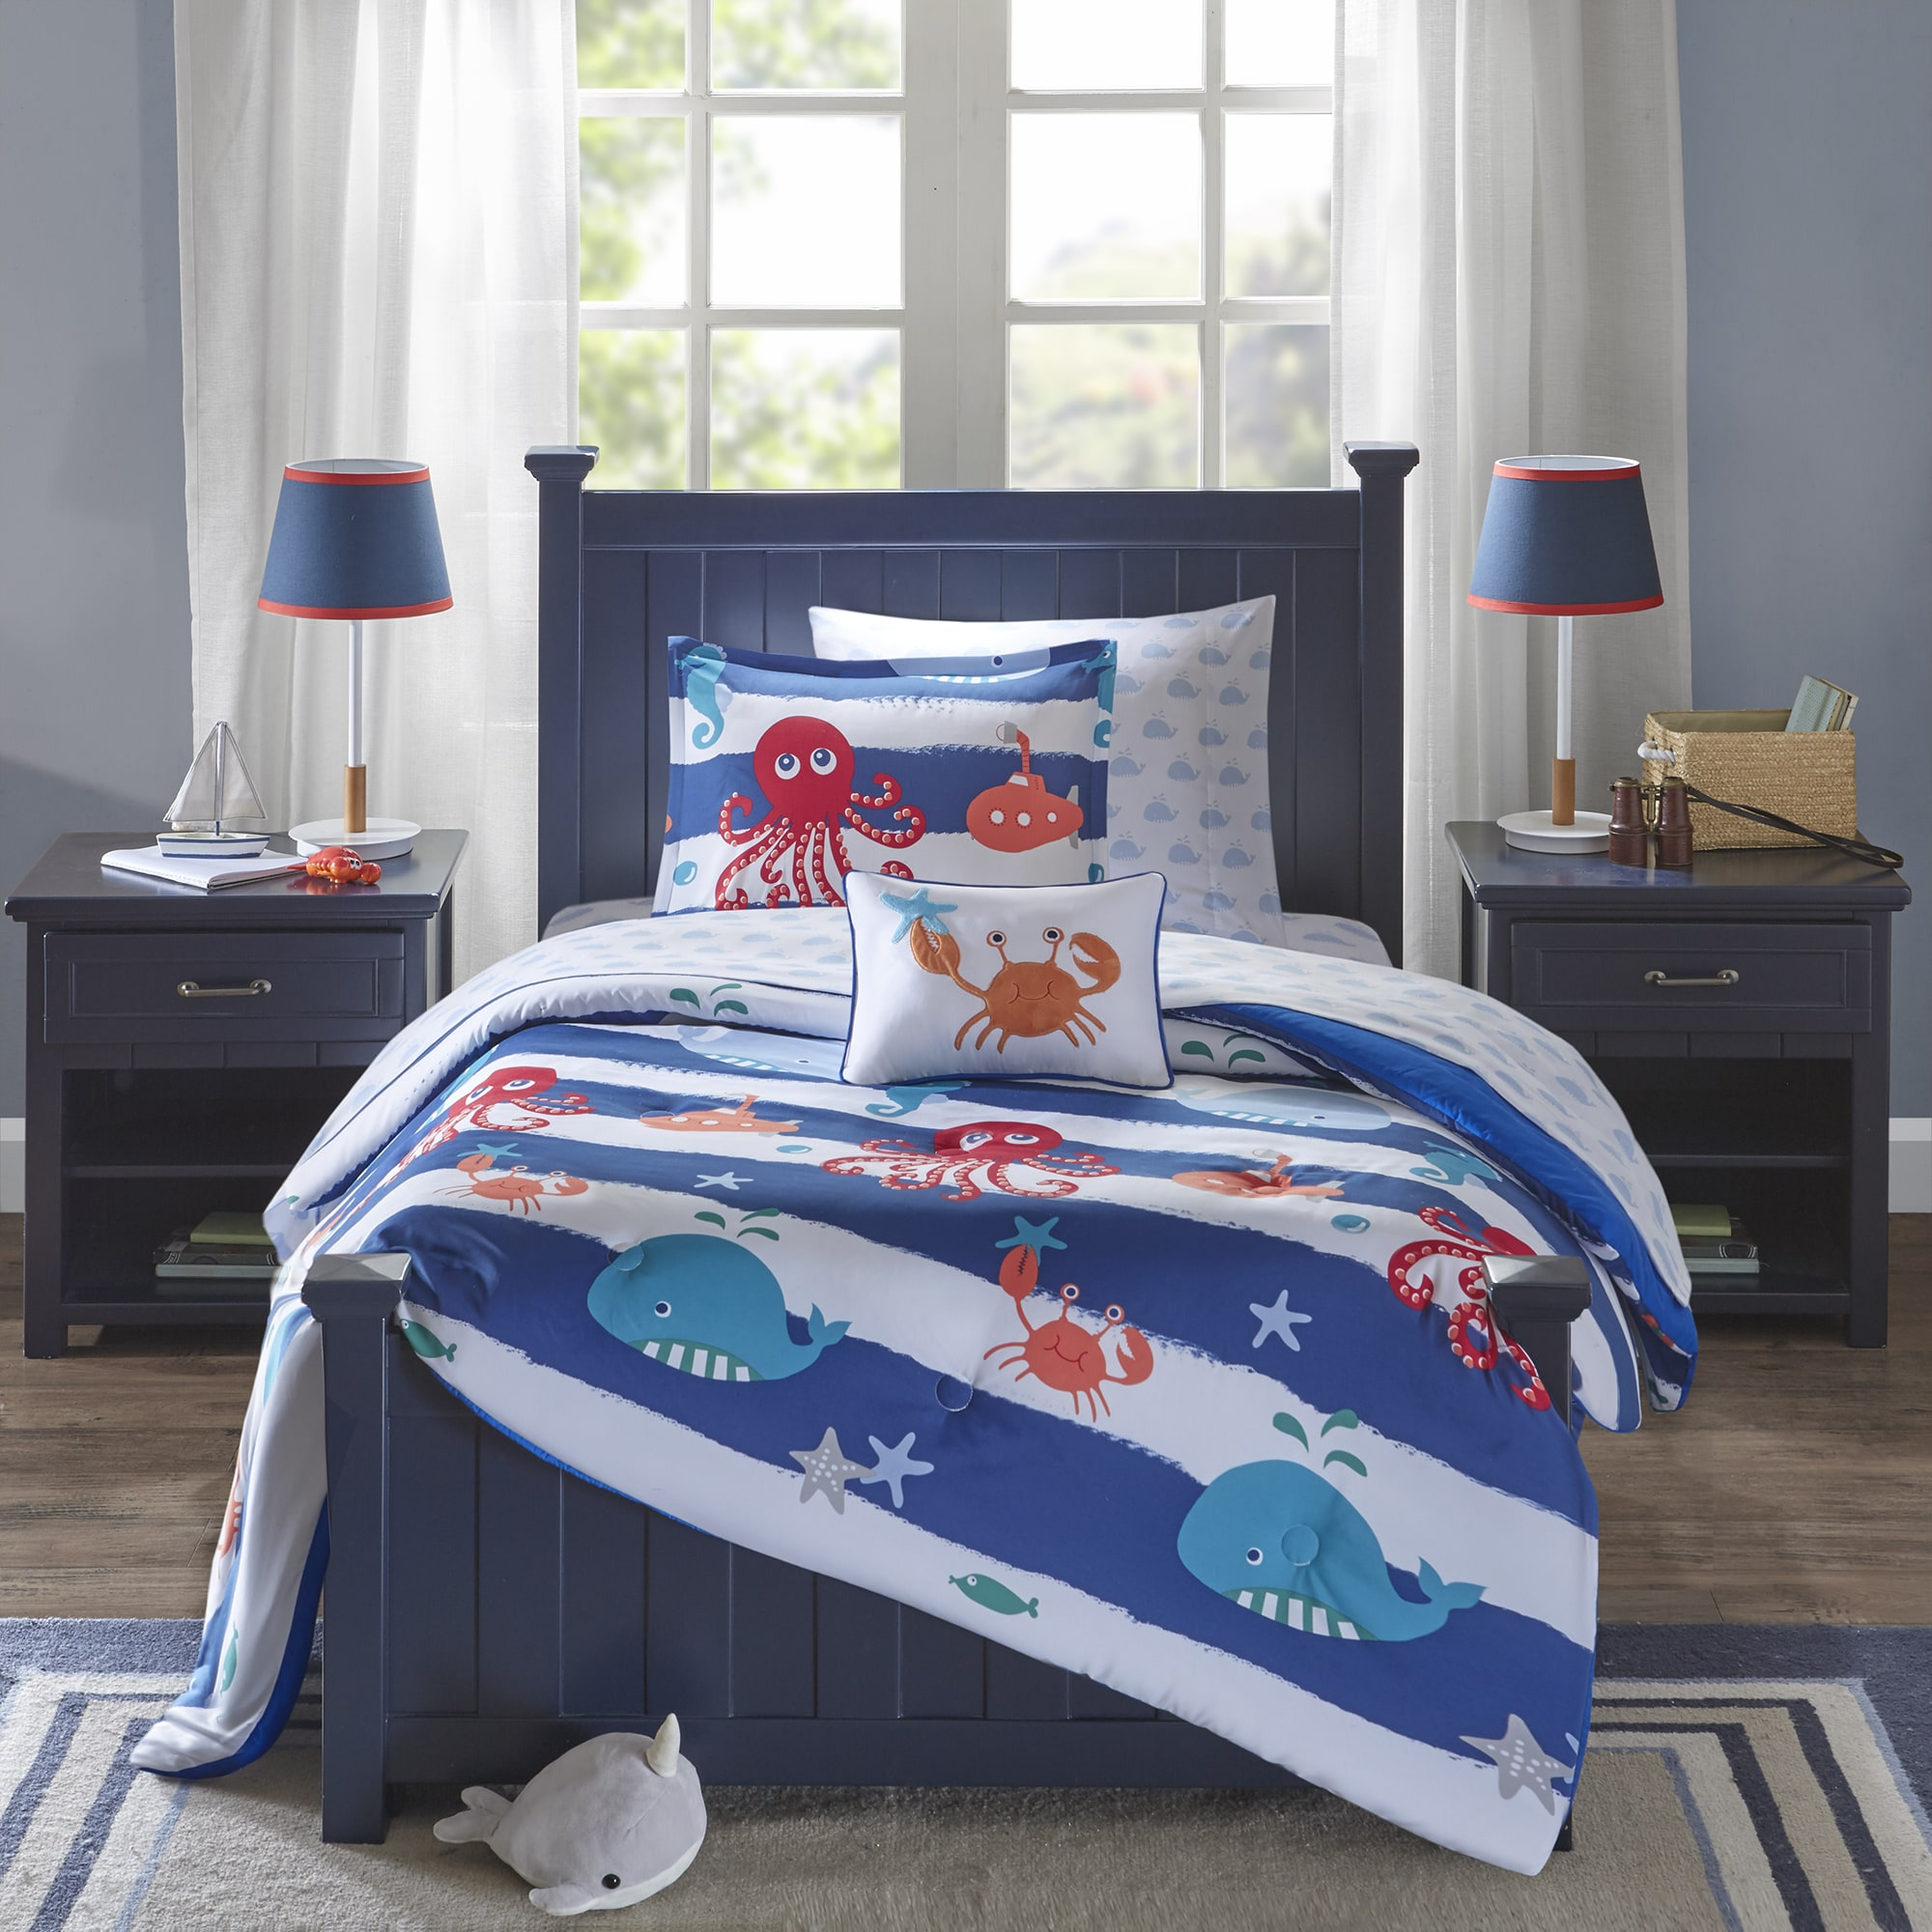 bed reversible in olaf size kids set disney emerging frozen queen a bag bedding piece s